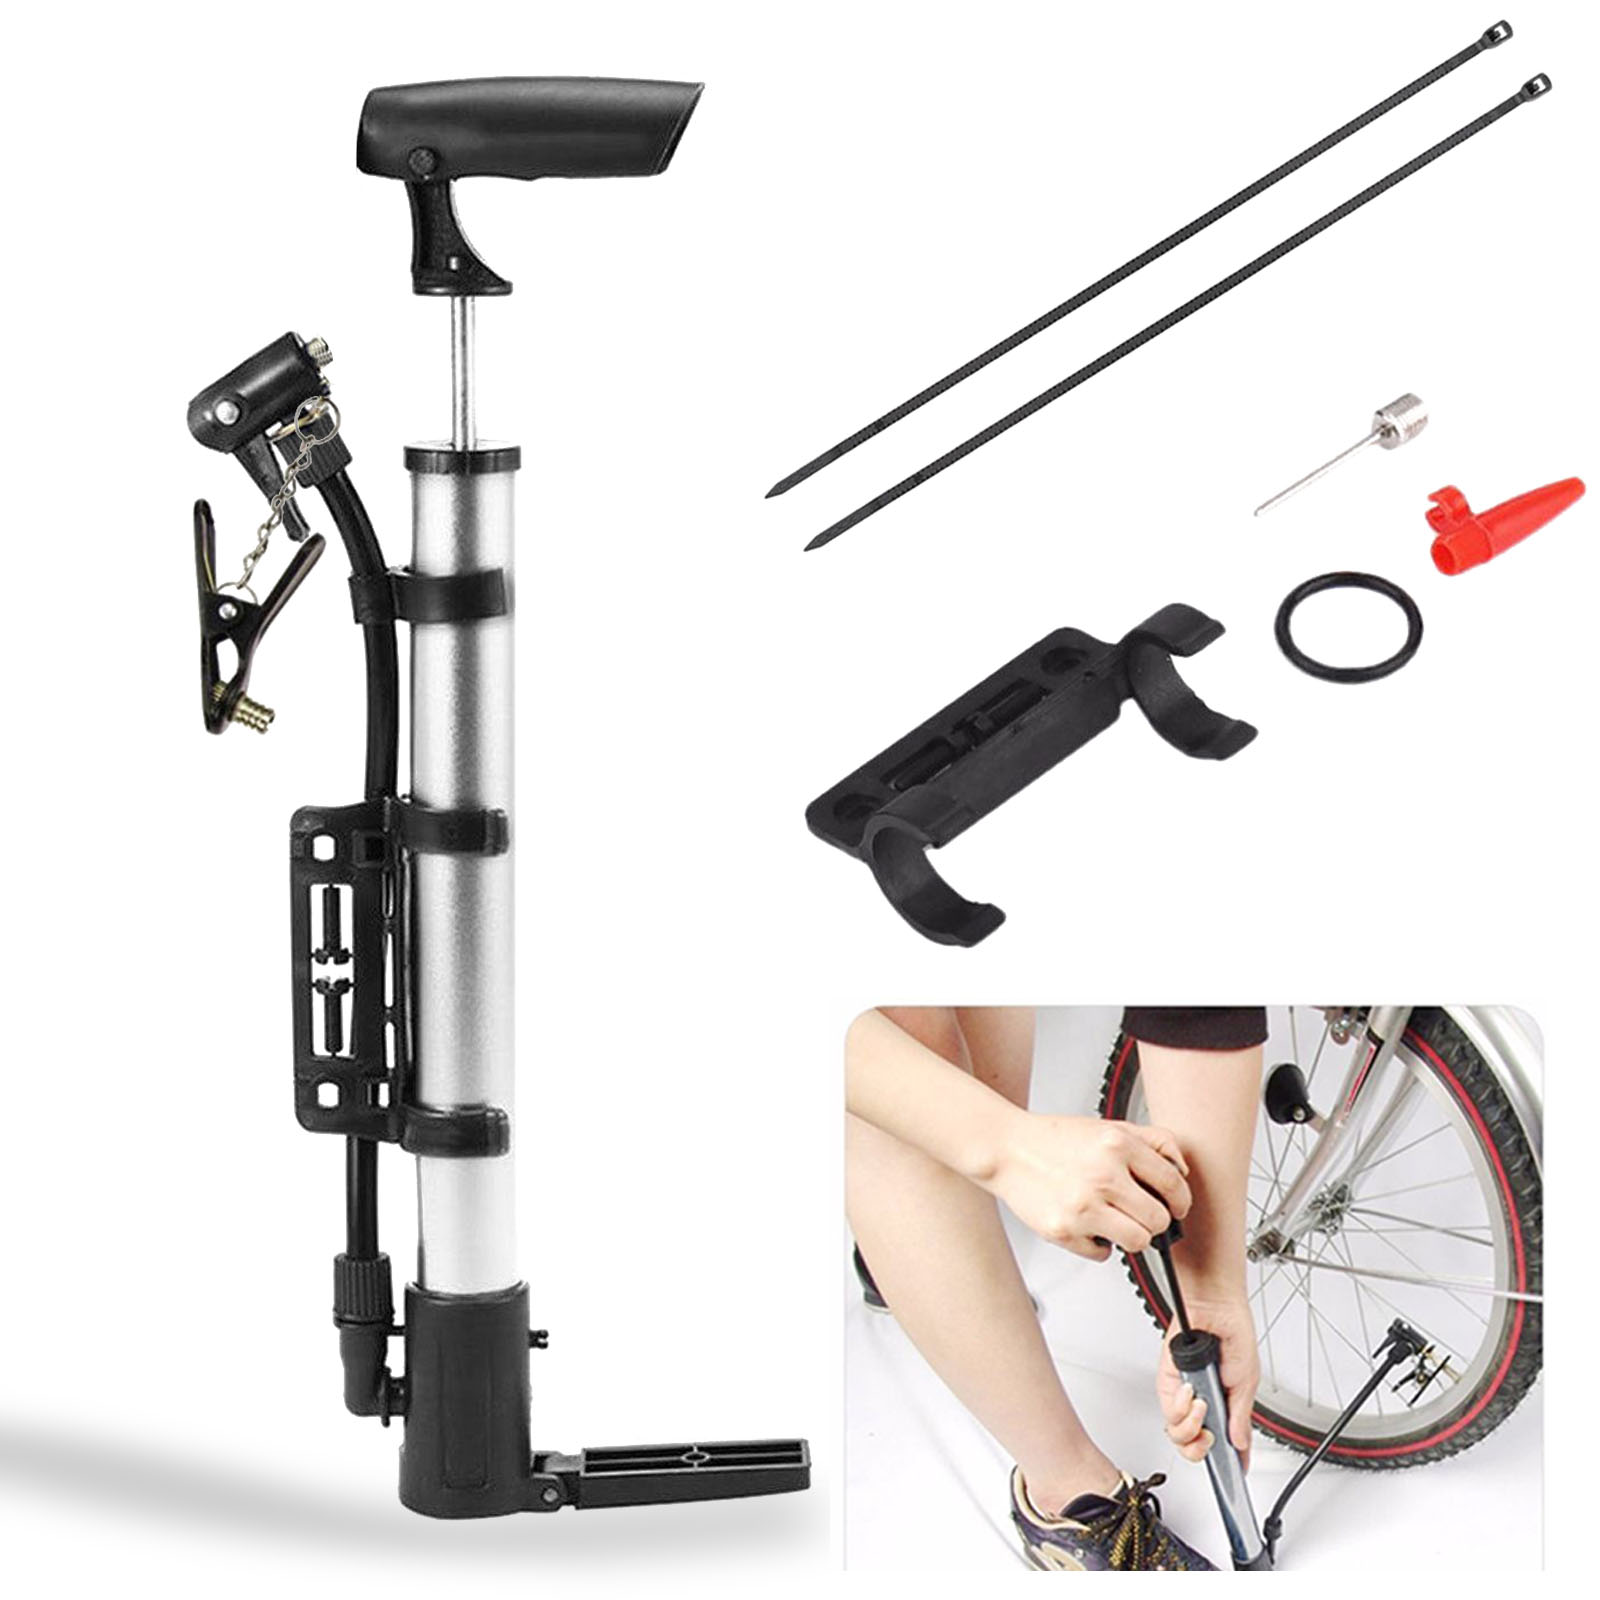 Portable High Pressure Bicycle Cycling Tyre Mini Air Pump for Bikes Basketball Ballon Inflator by